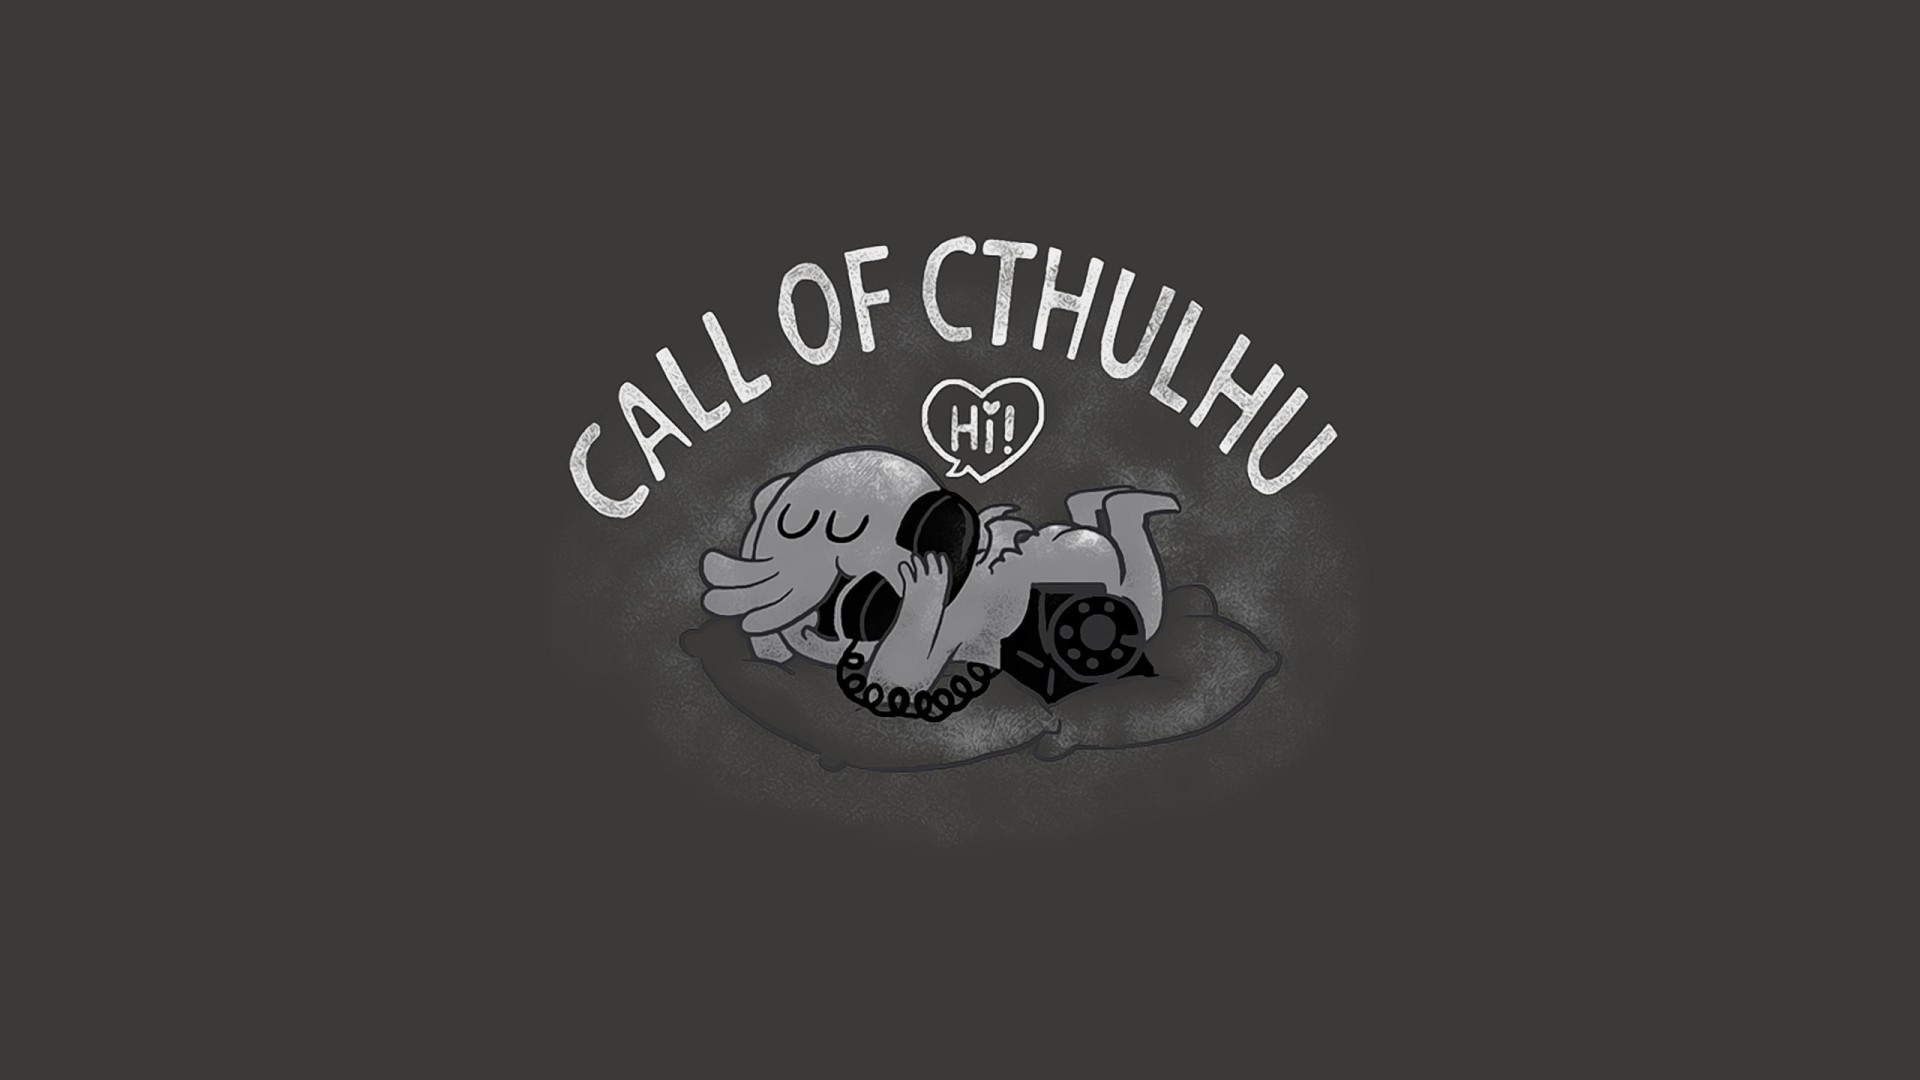 1920x1080 Humor - Fantasy Cthulhu Telephone Phone Black & White Call Humor Wallpaper